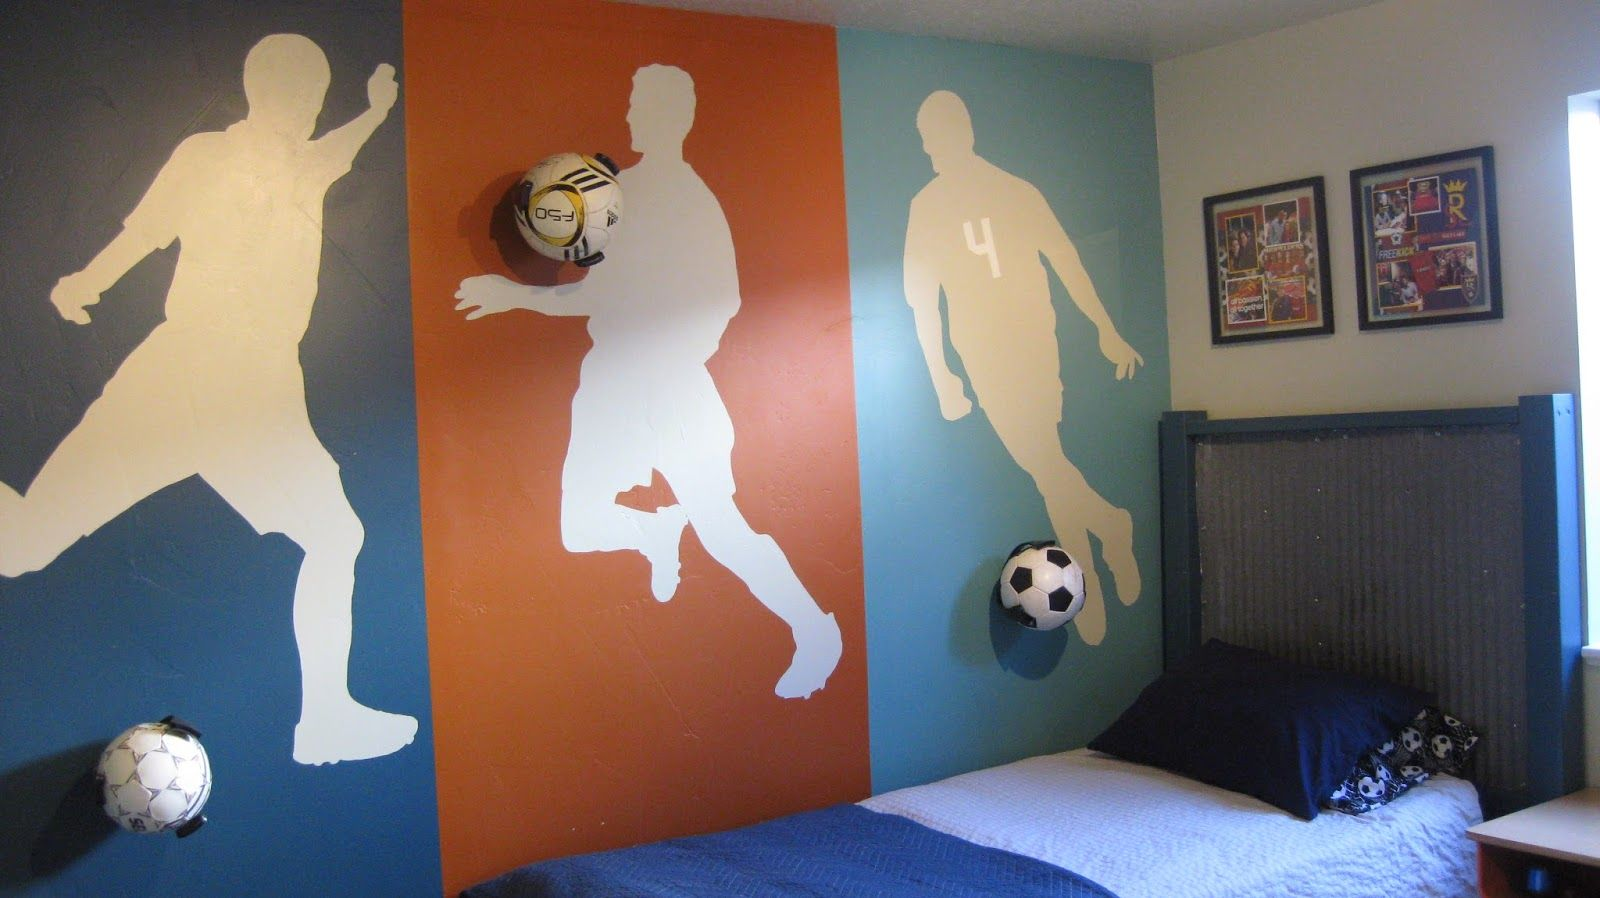 Boys soccer bedroom ideas - 15 Cool Teenage Boy Room Ideas